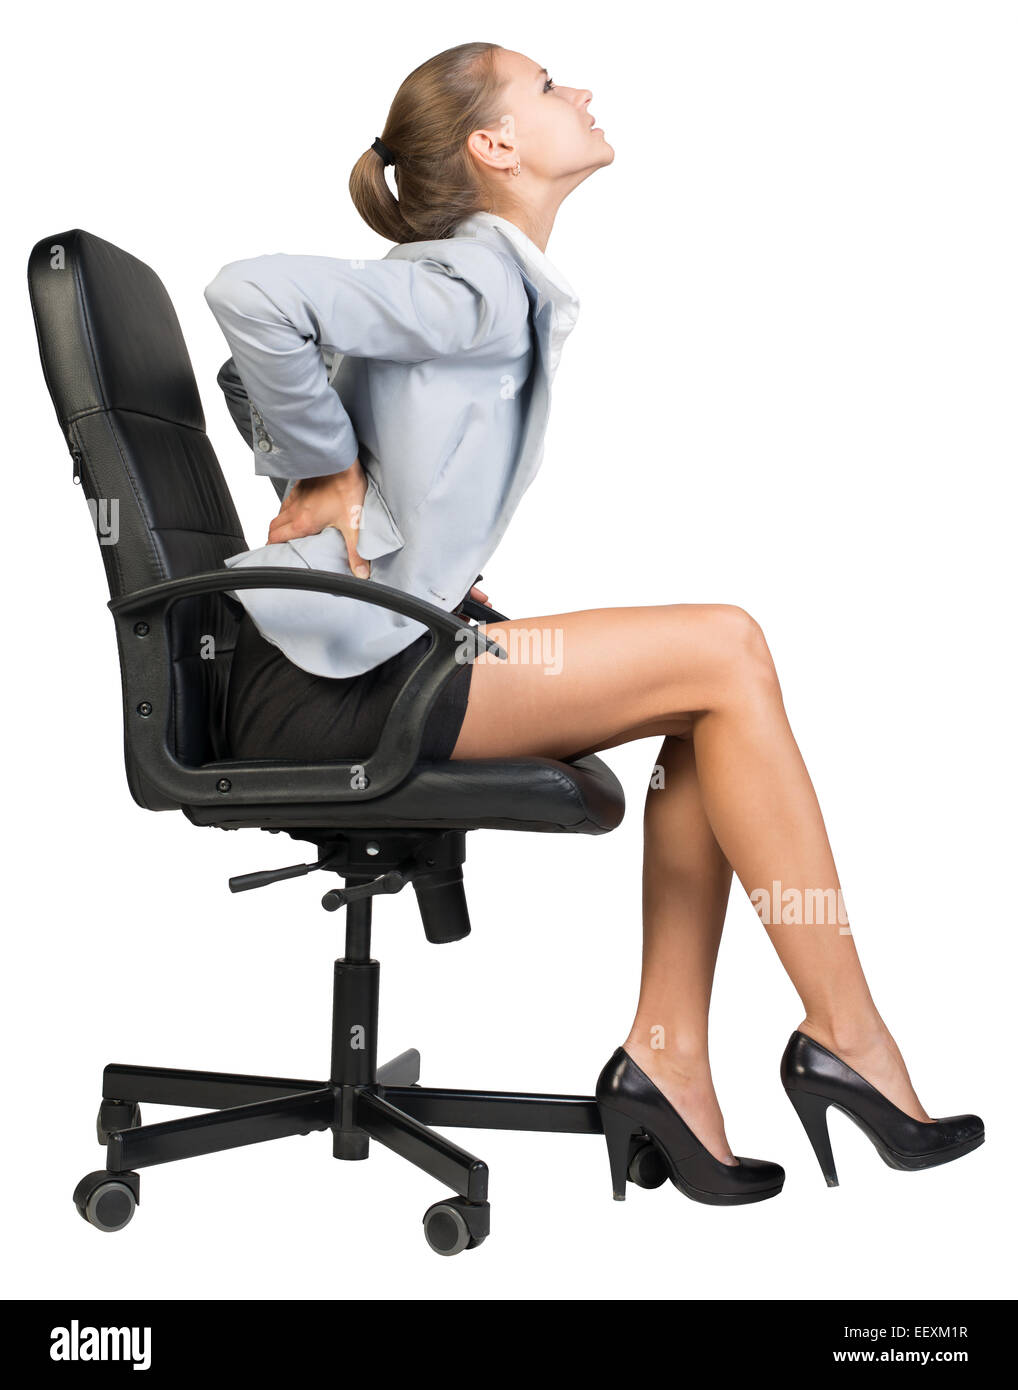 desk chair for lower back pain cb2 leather businesswoman with from sitting on office